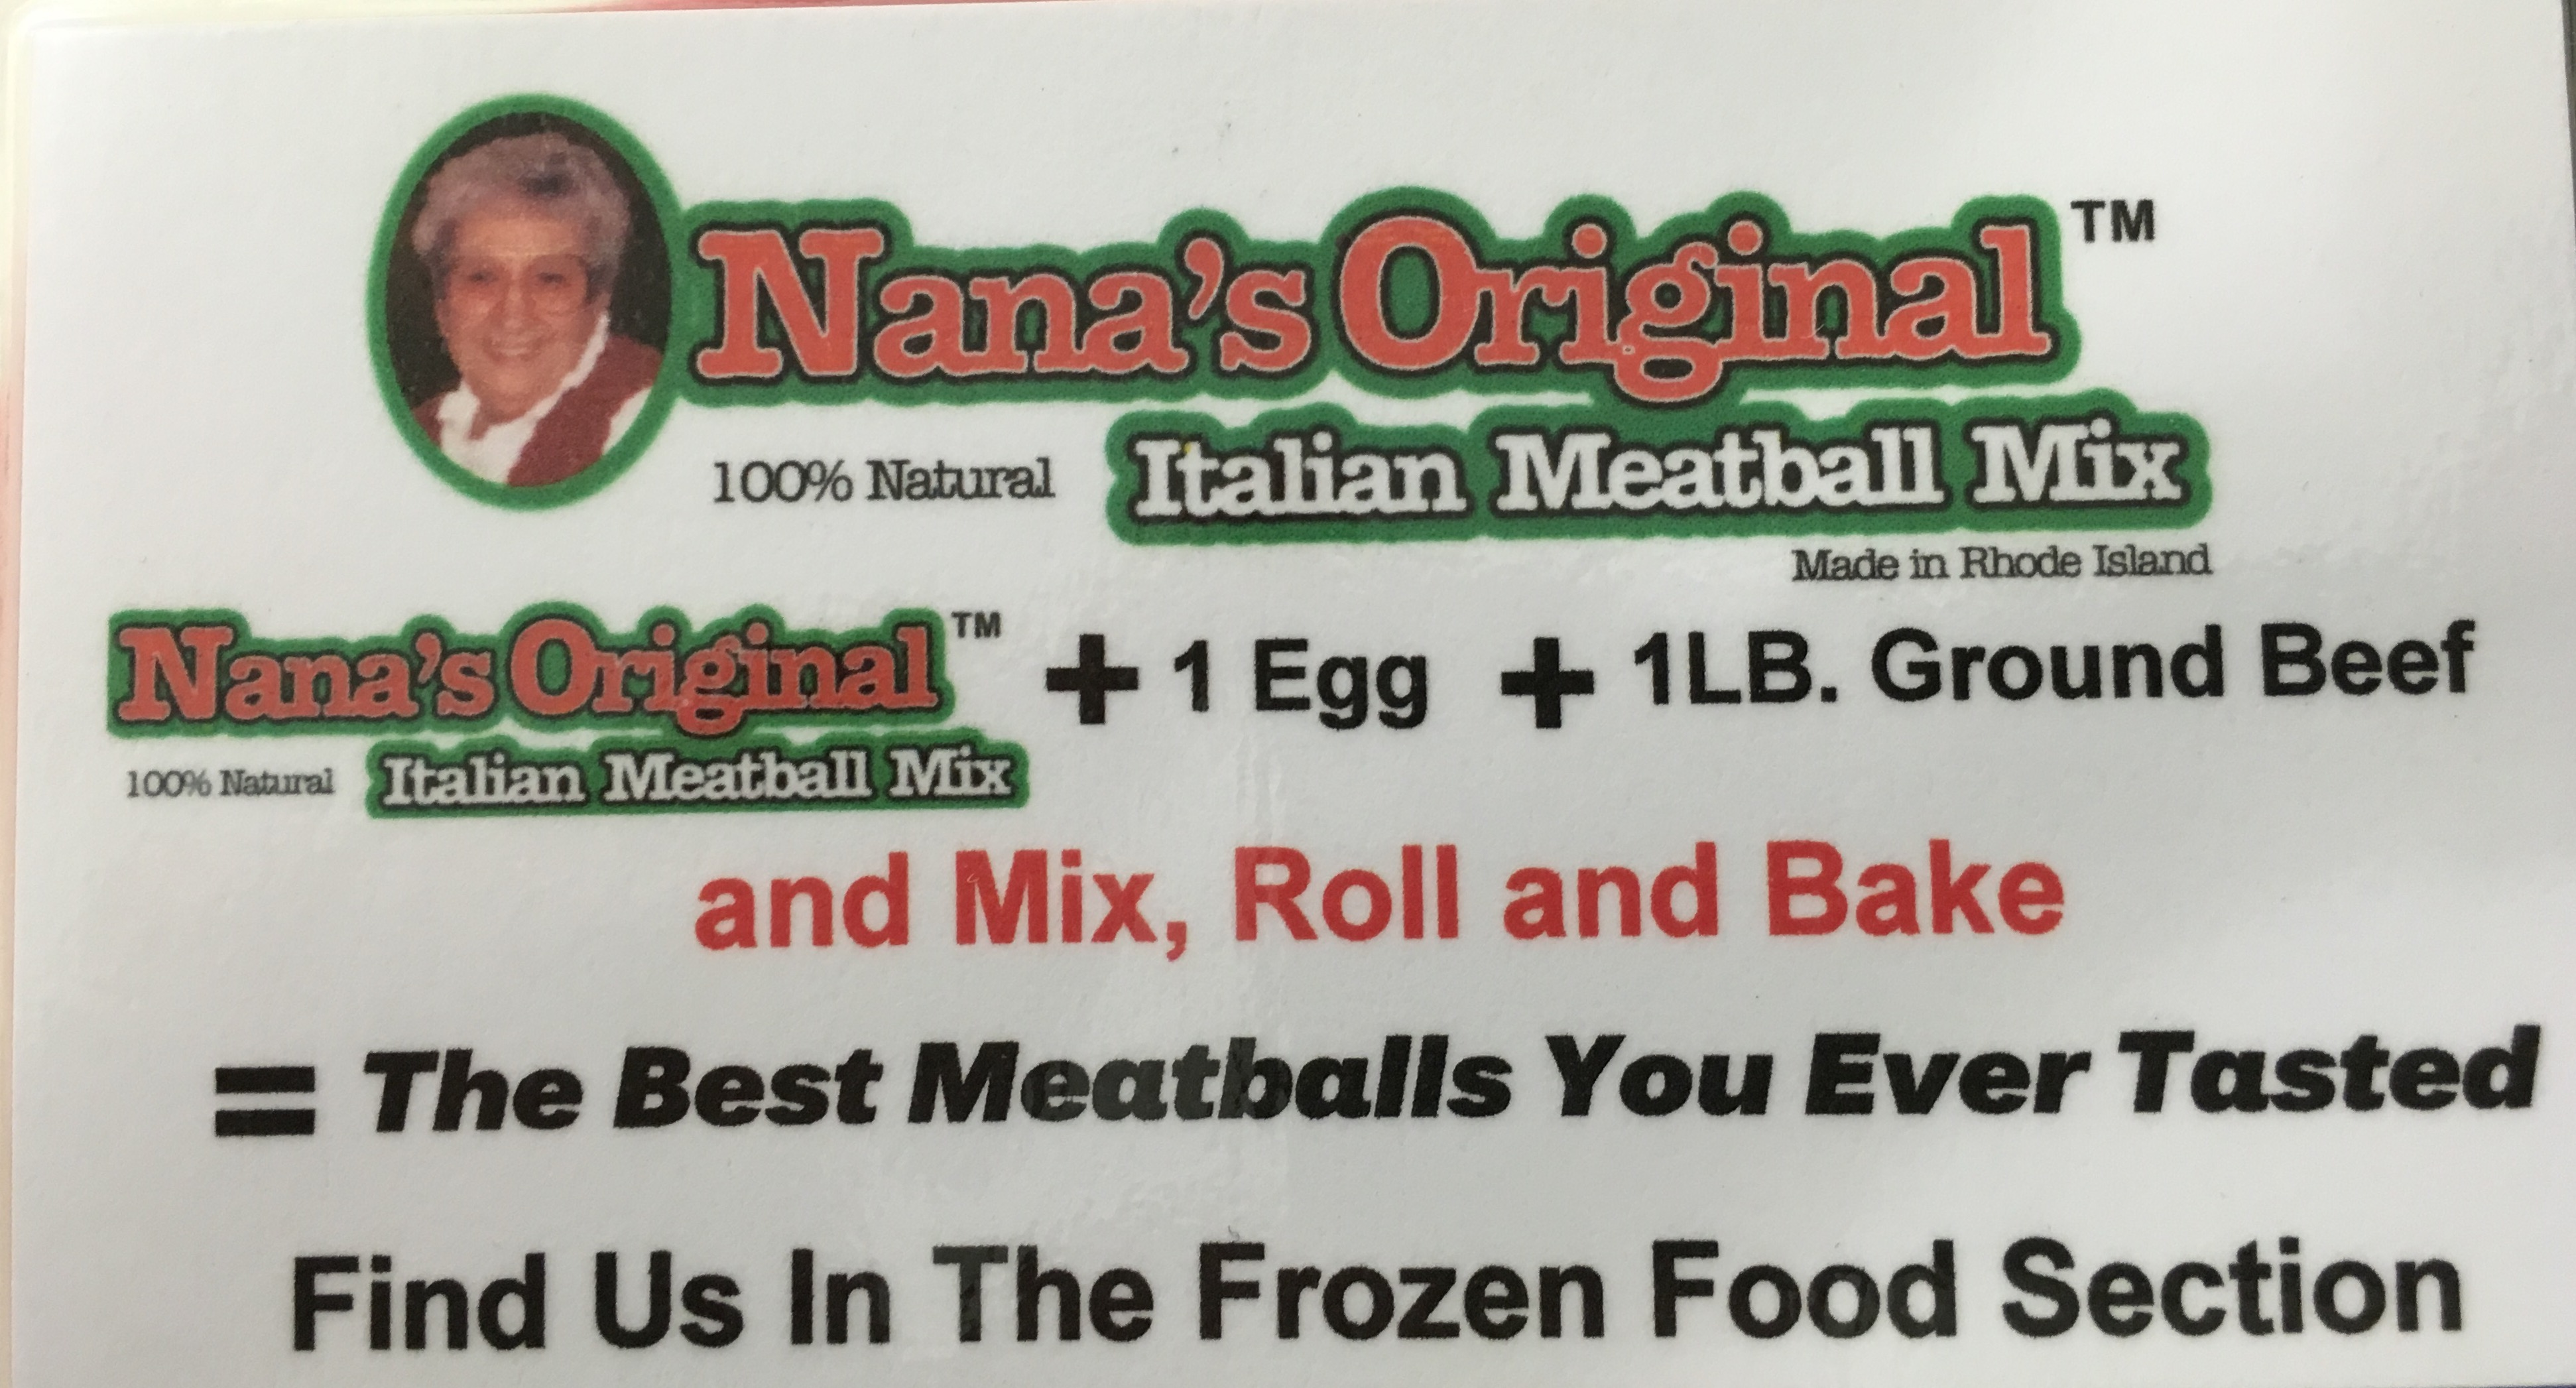 Nana's Original Italian Meatball Mix